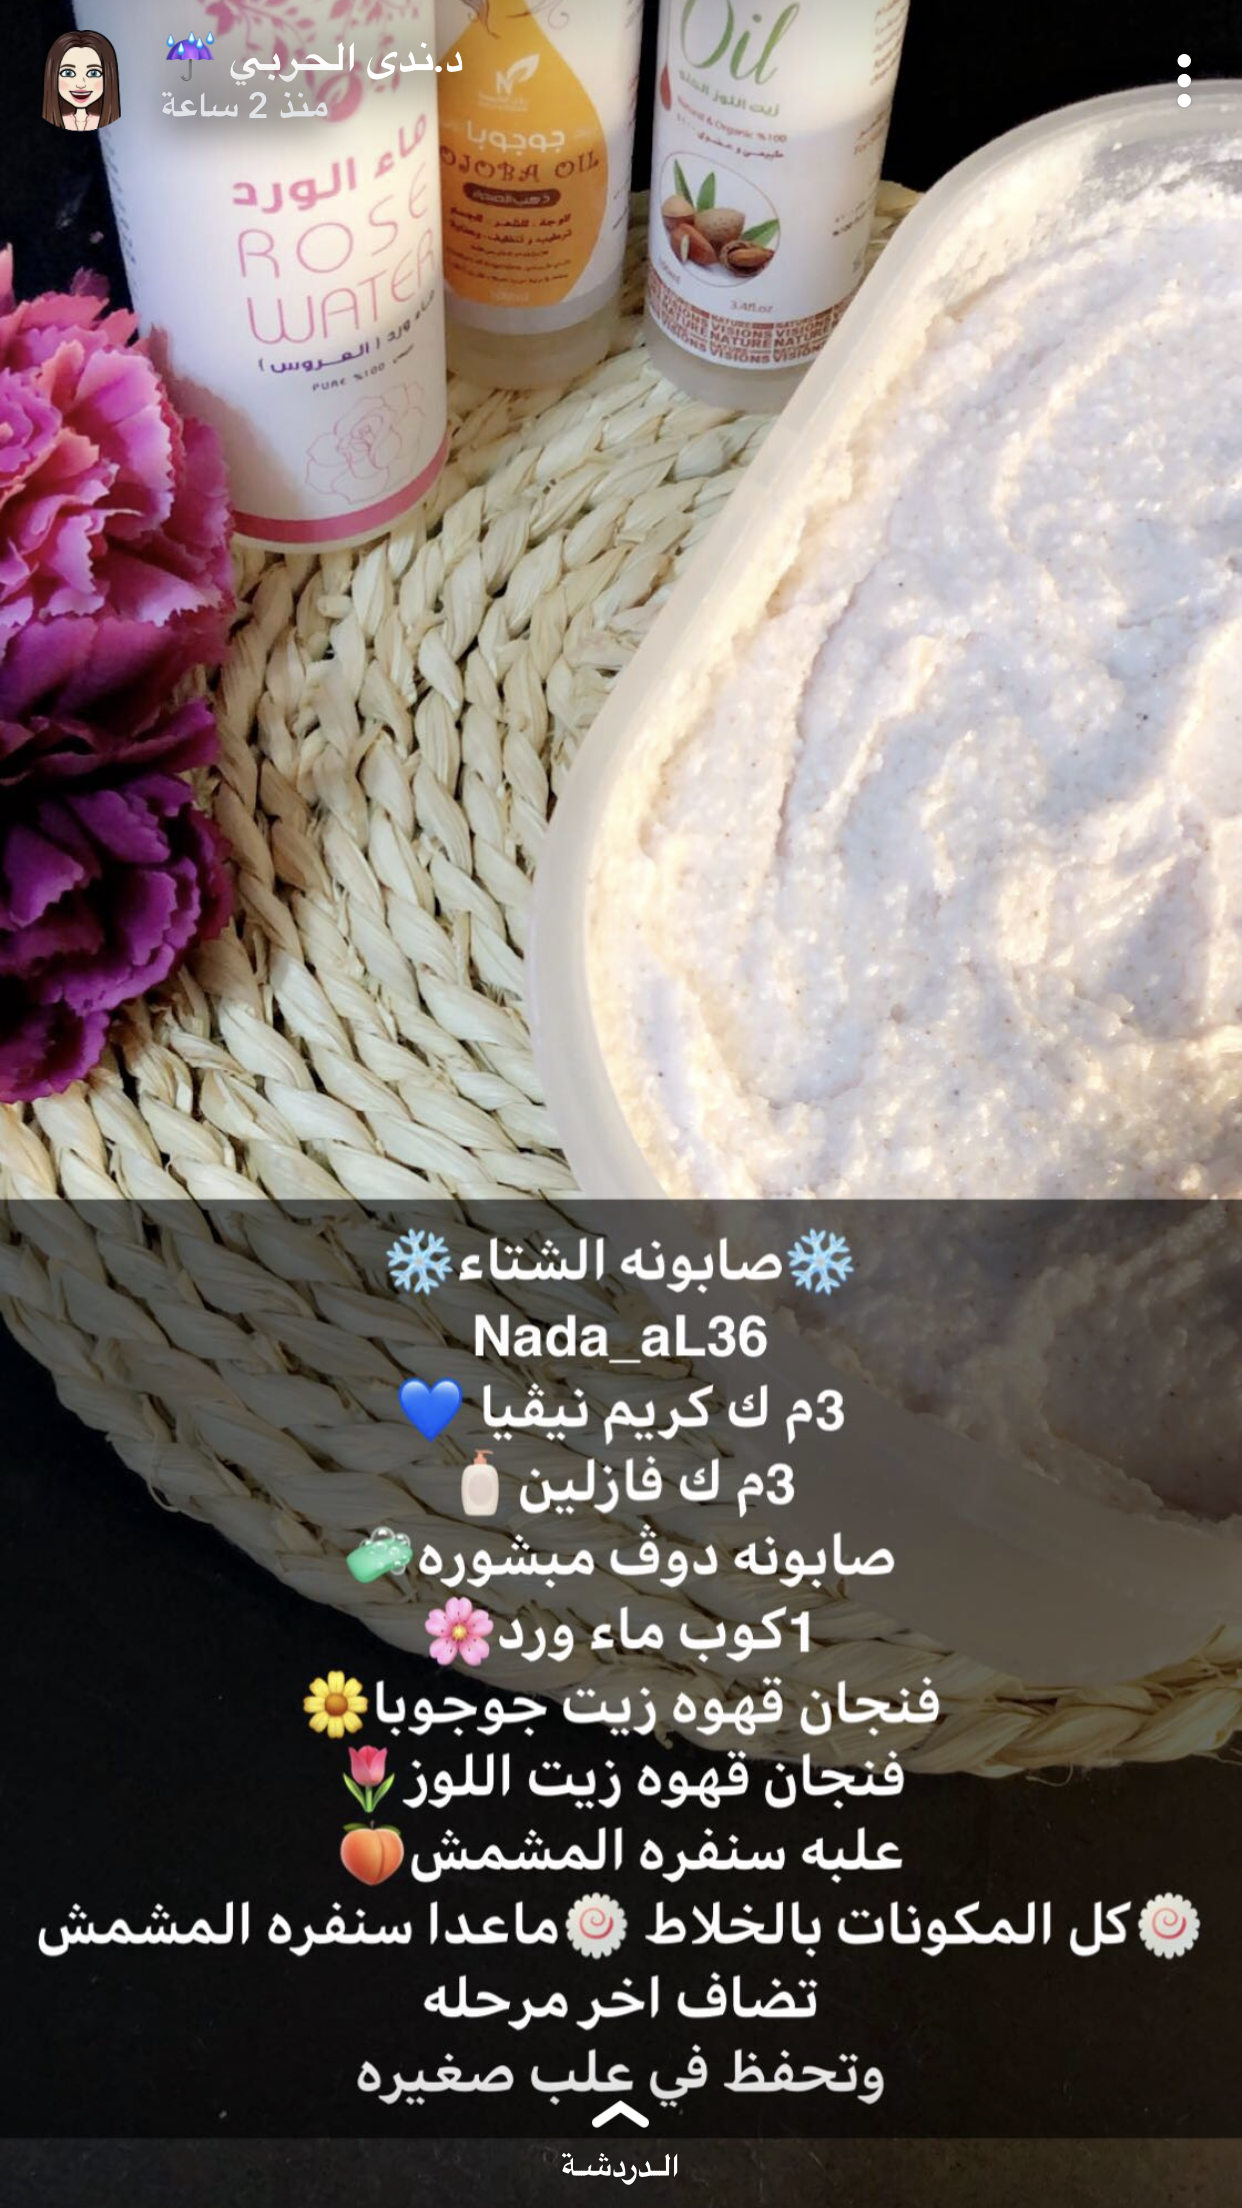 Pin By Roro Umeyad On Body الجسم Skin Care Skin Convenience Store Products